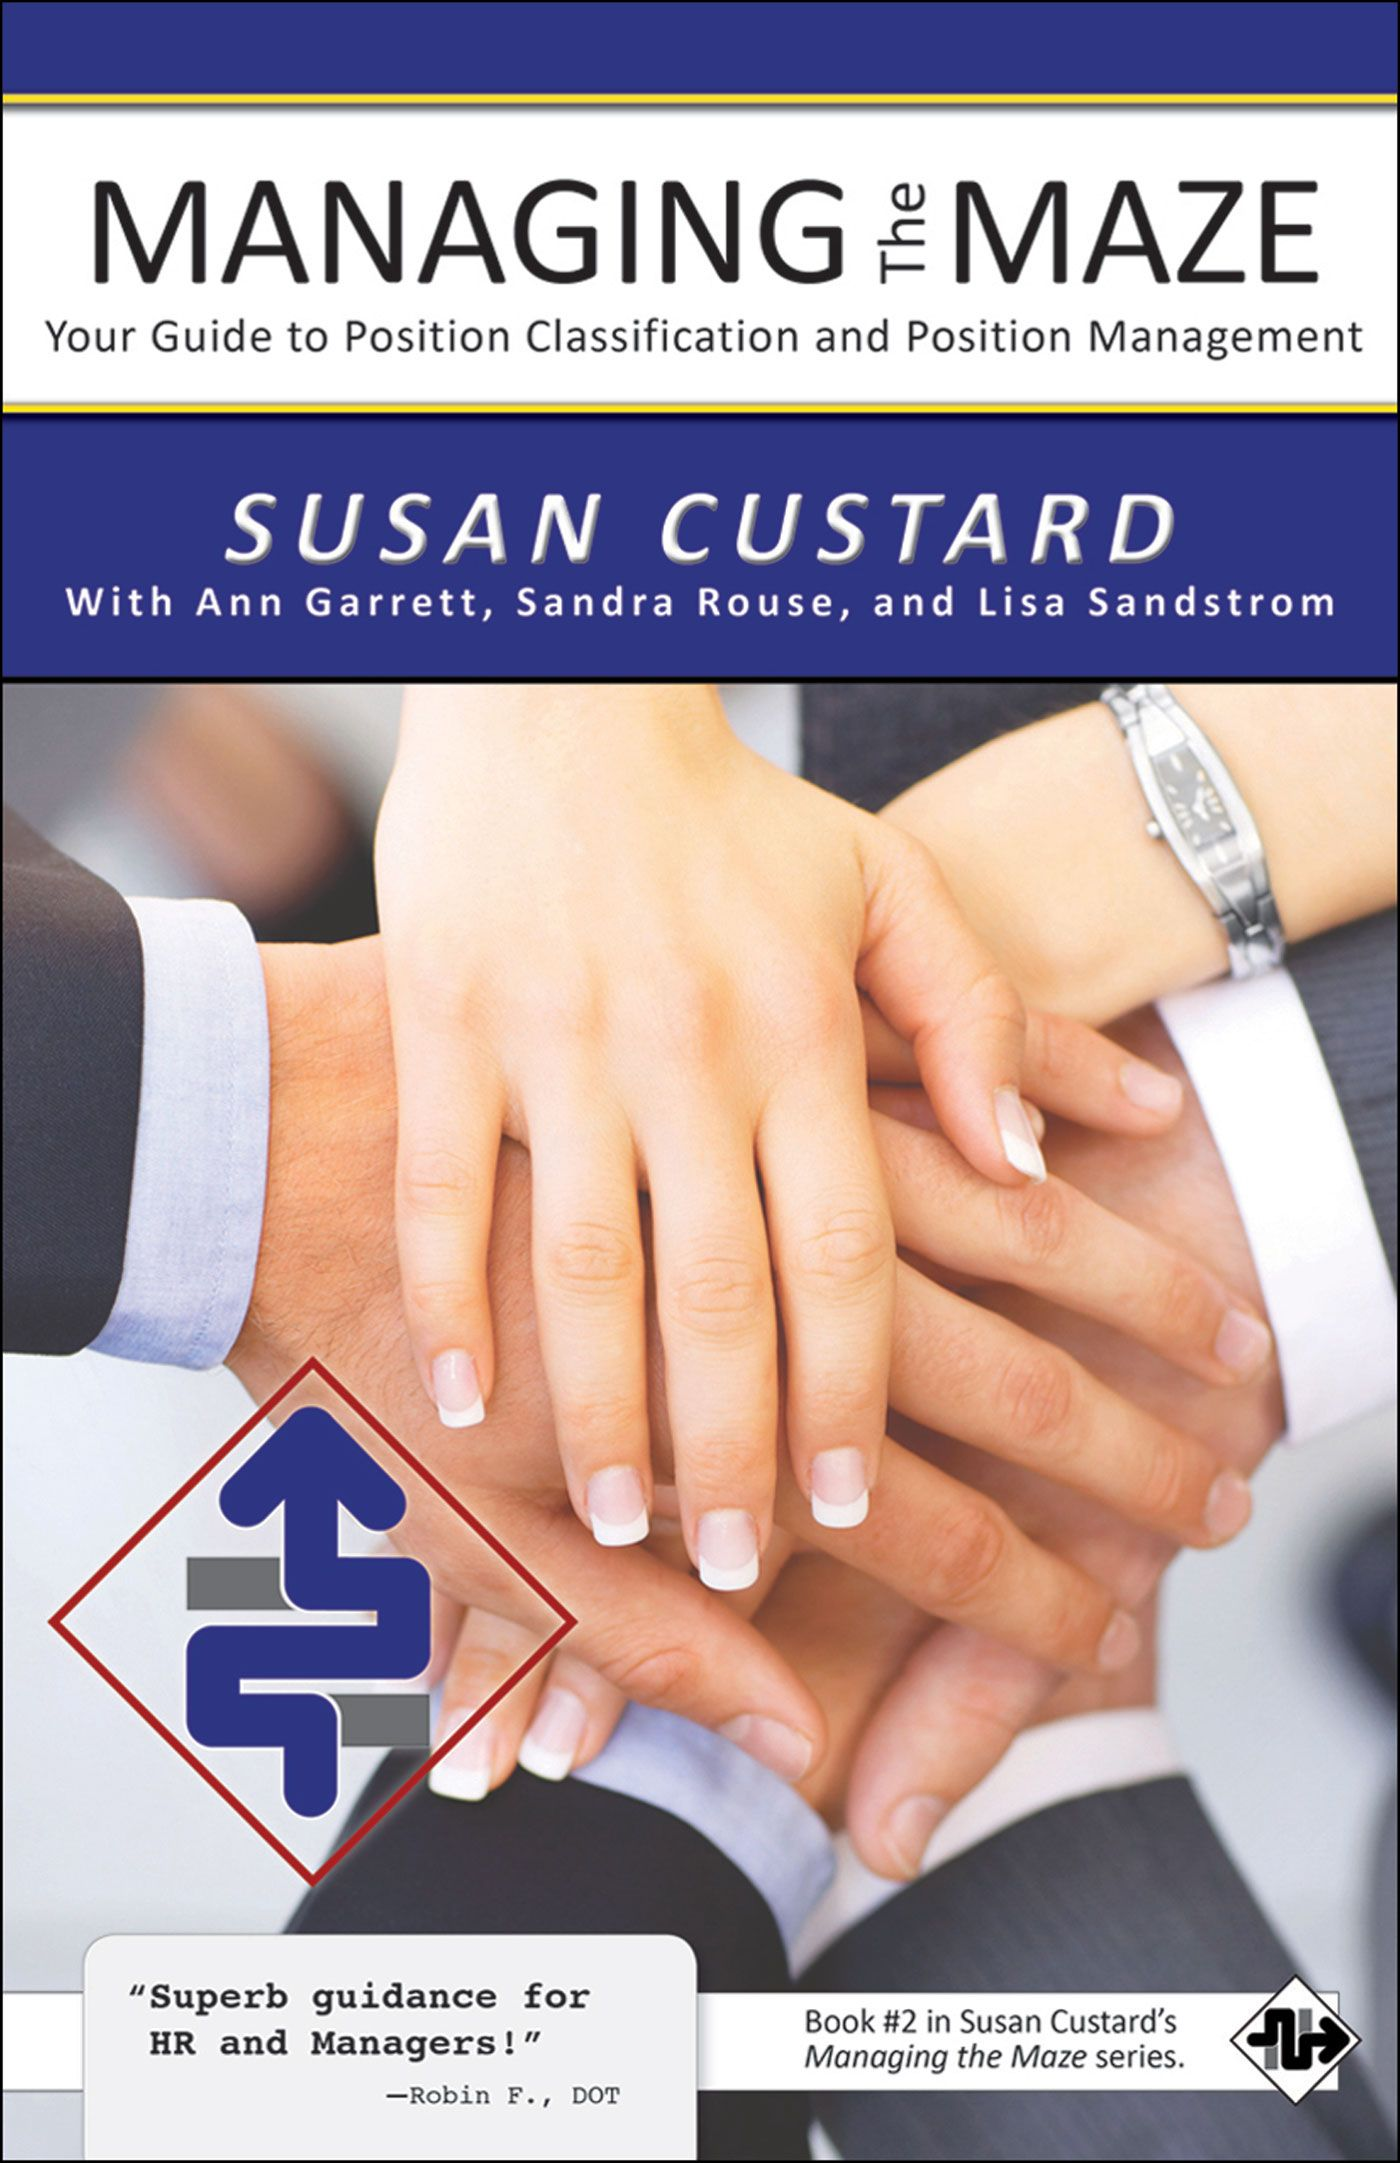 Bringing more than 30 years of federal human resources experience to her work, Custard helps managers and Human Resource Directors to execute highly successful programs within the federal government executive service agencies.   Custard is considered a thought leader and expert in key areas of federal human capital management, leveraging her expertise to identify custom solutions to the unique & challenging situations faced by federal agencies in today's environment. www.bluedragon_pub.com